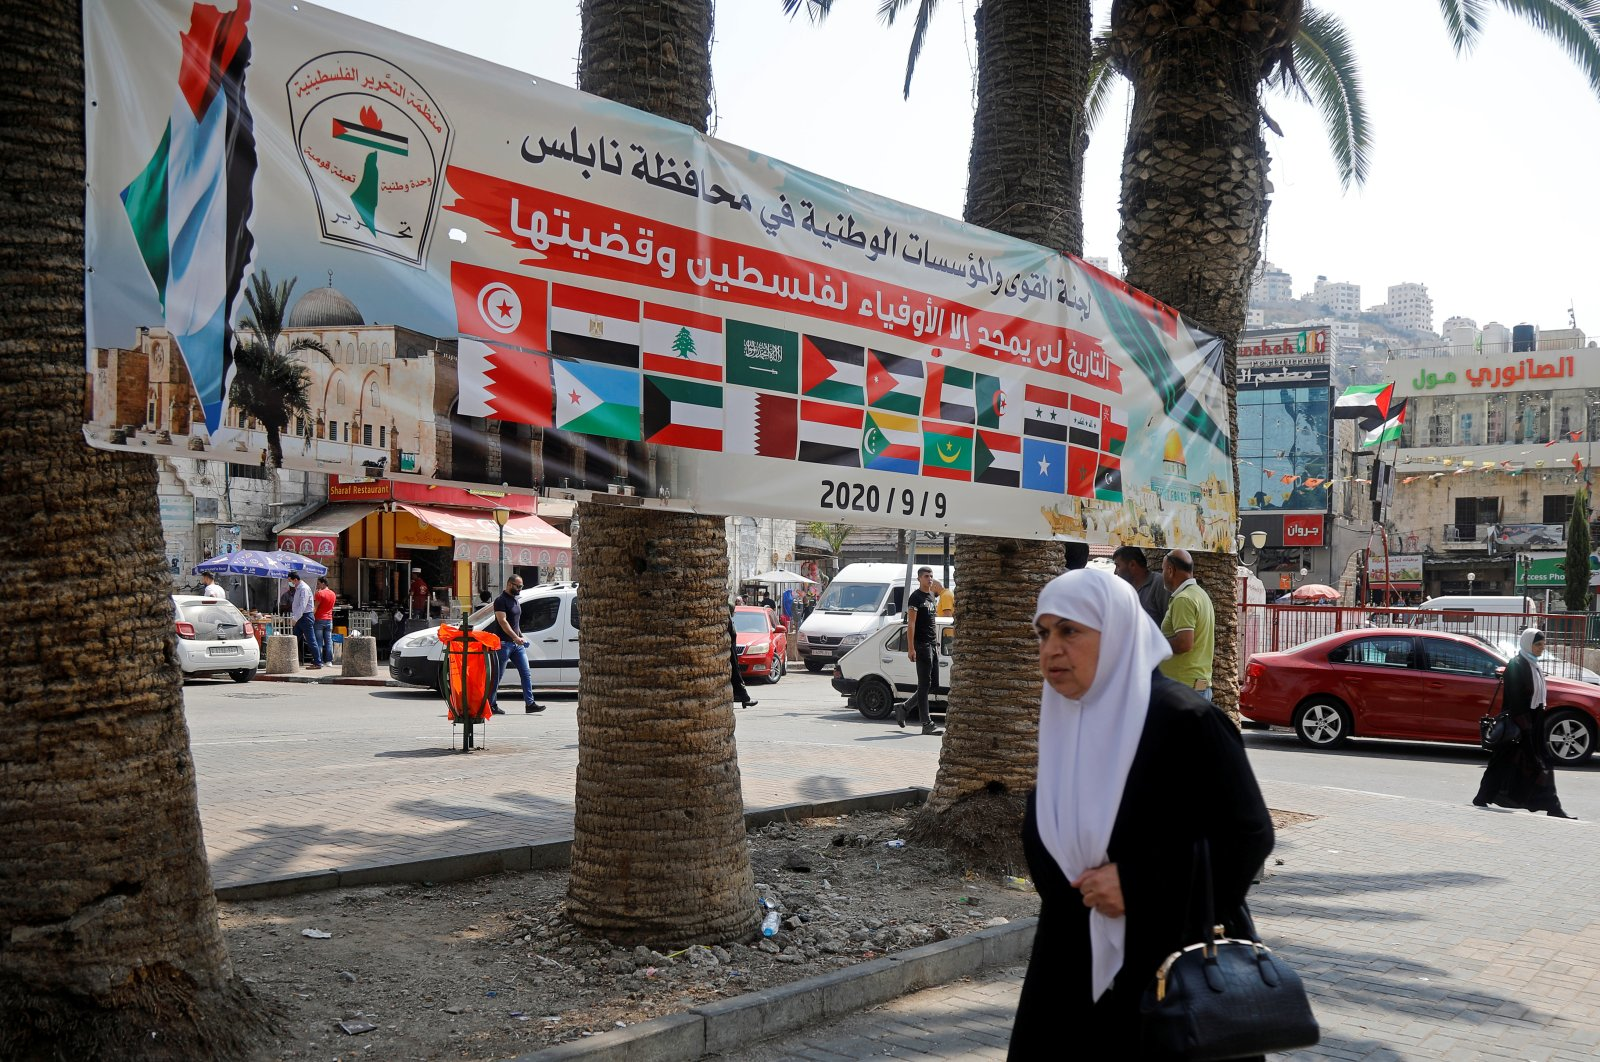 A woman walks past a banner showing Arab countries' flags during a protest against normalizing ties with Israel, in Nablus, in the Israeli-occupied West Bank, Sept. 9, 2020. (Reuters Photo)